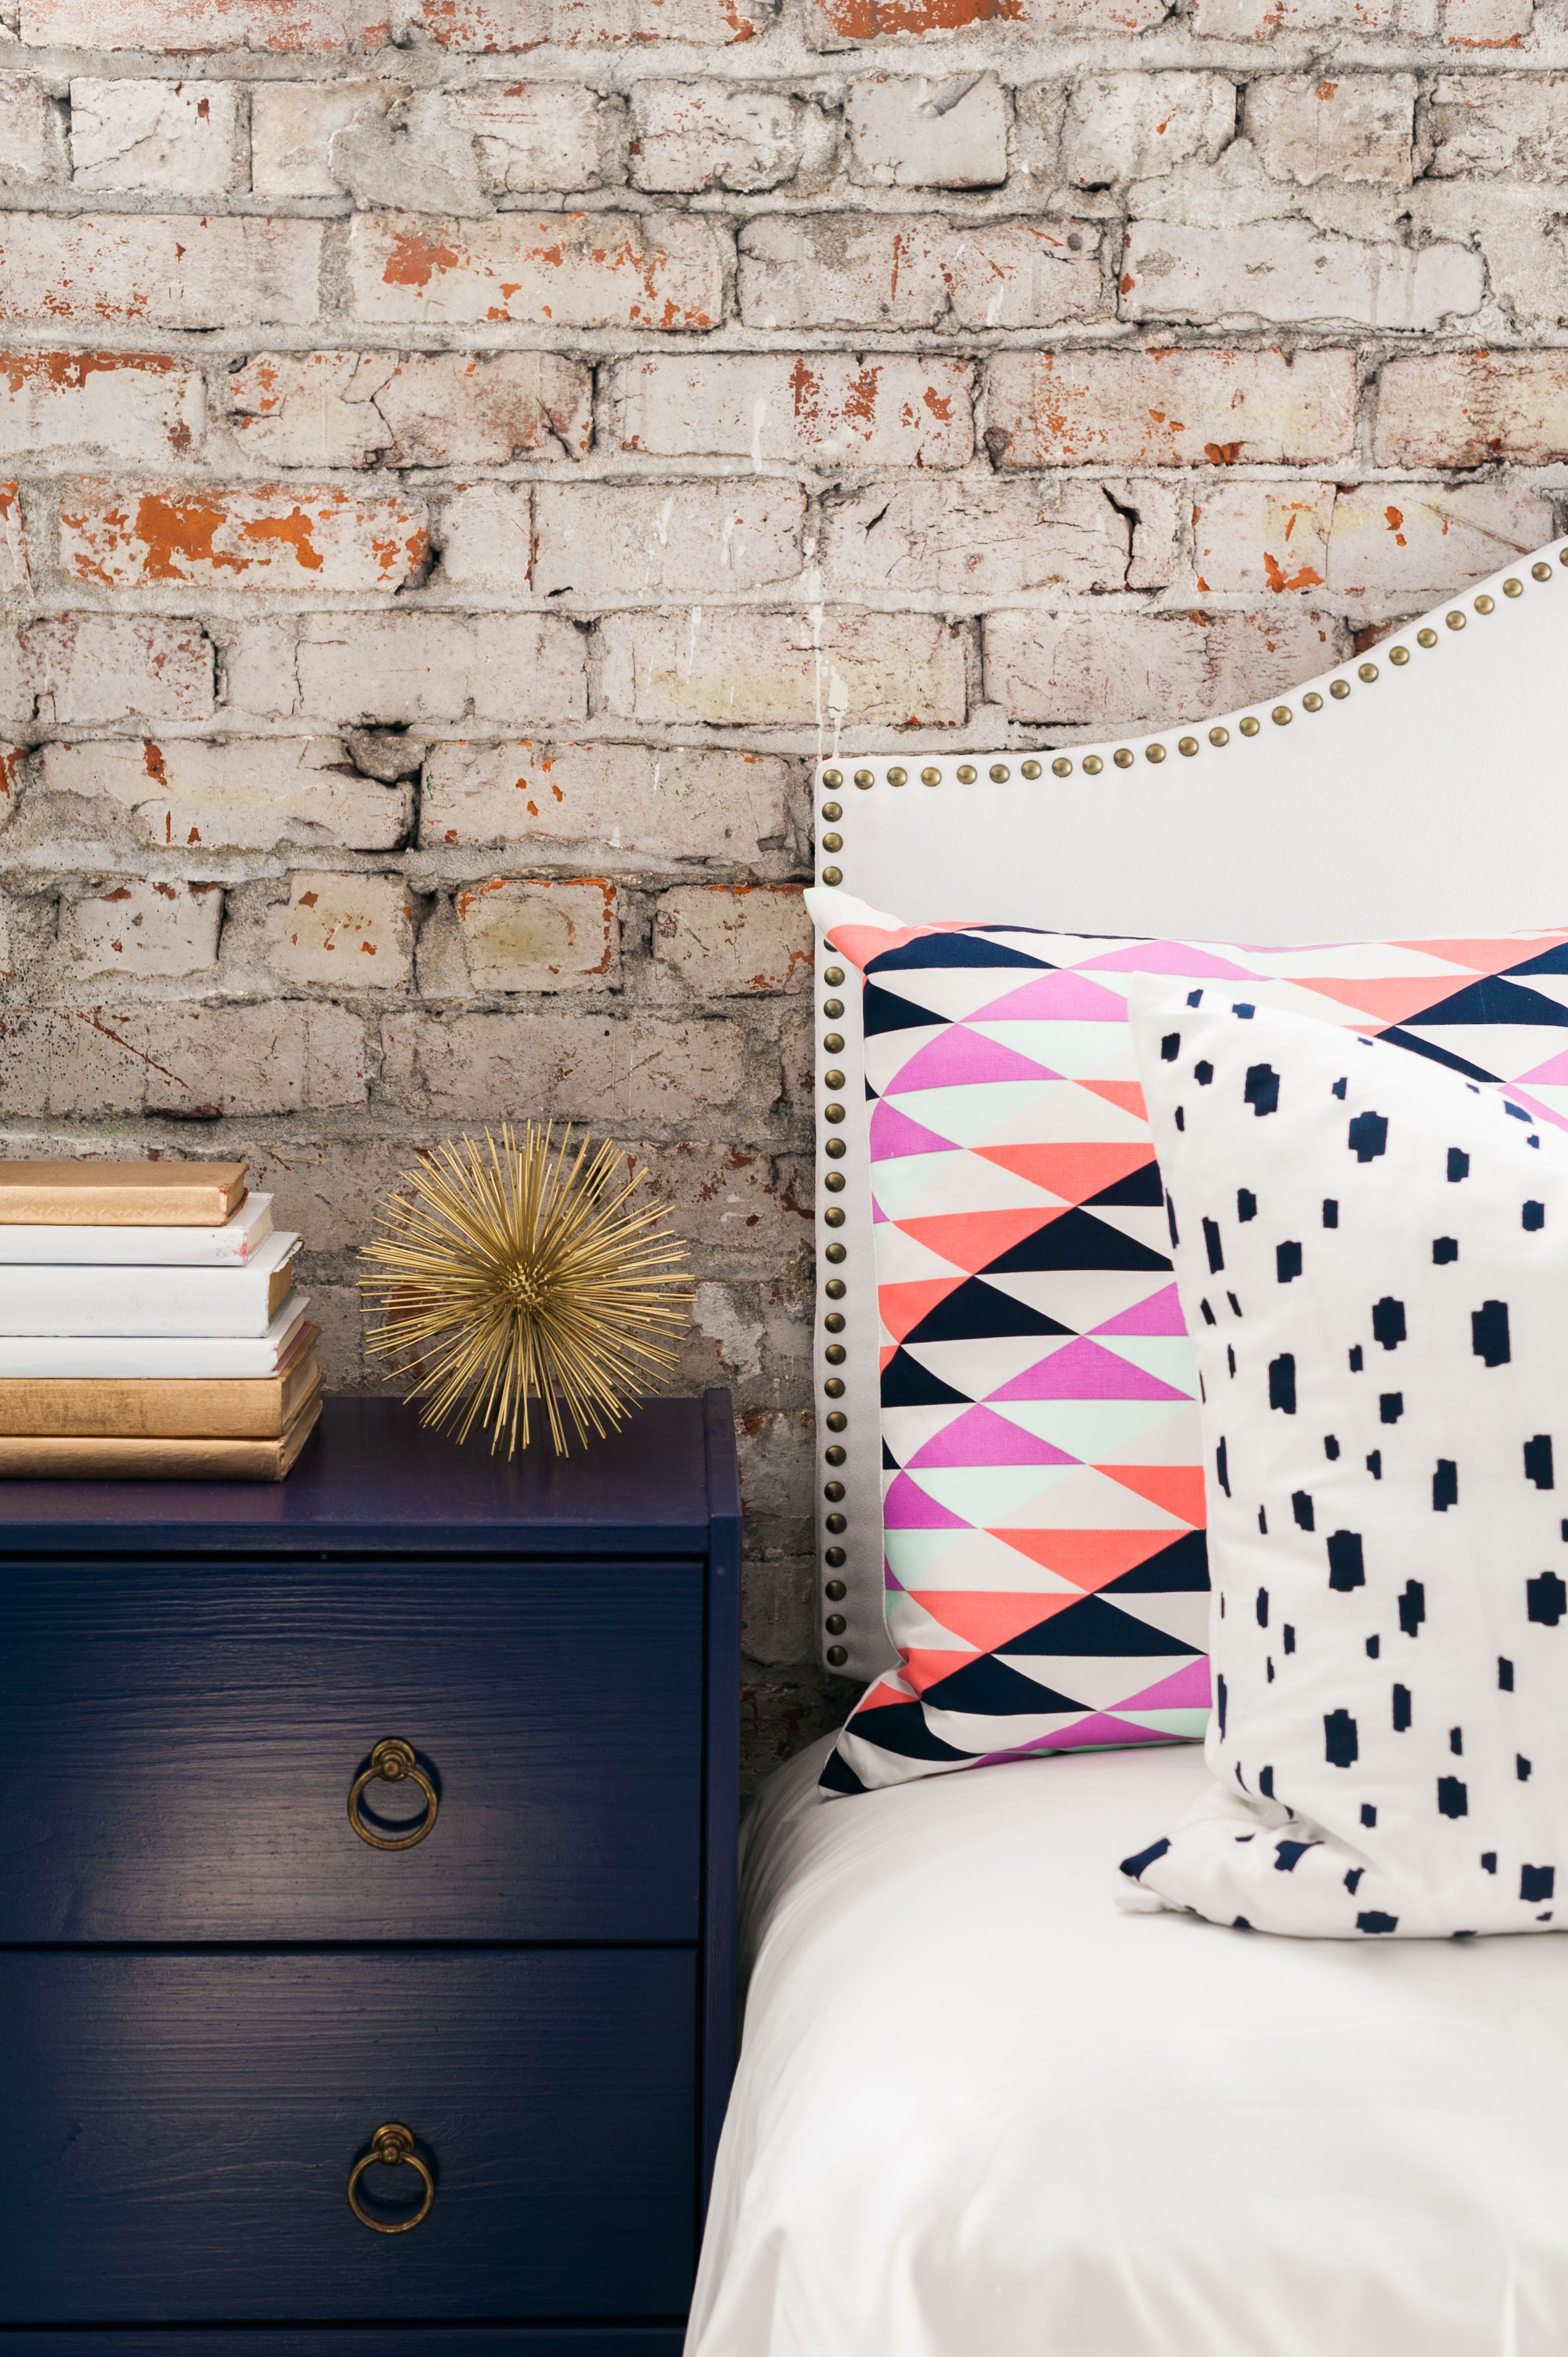 Navy spotted pillow bricks walls and exposed brick